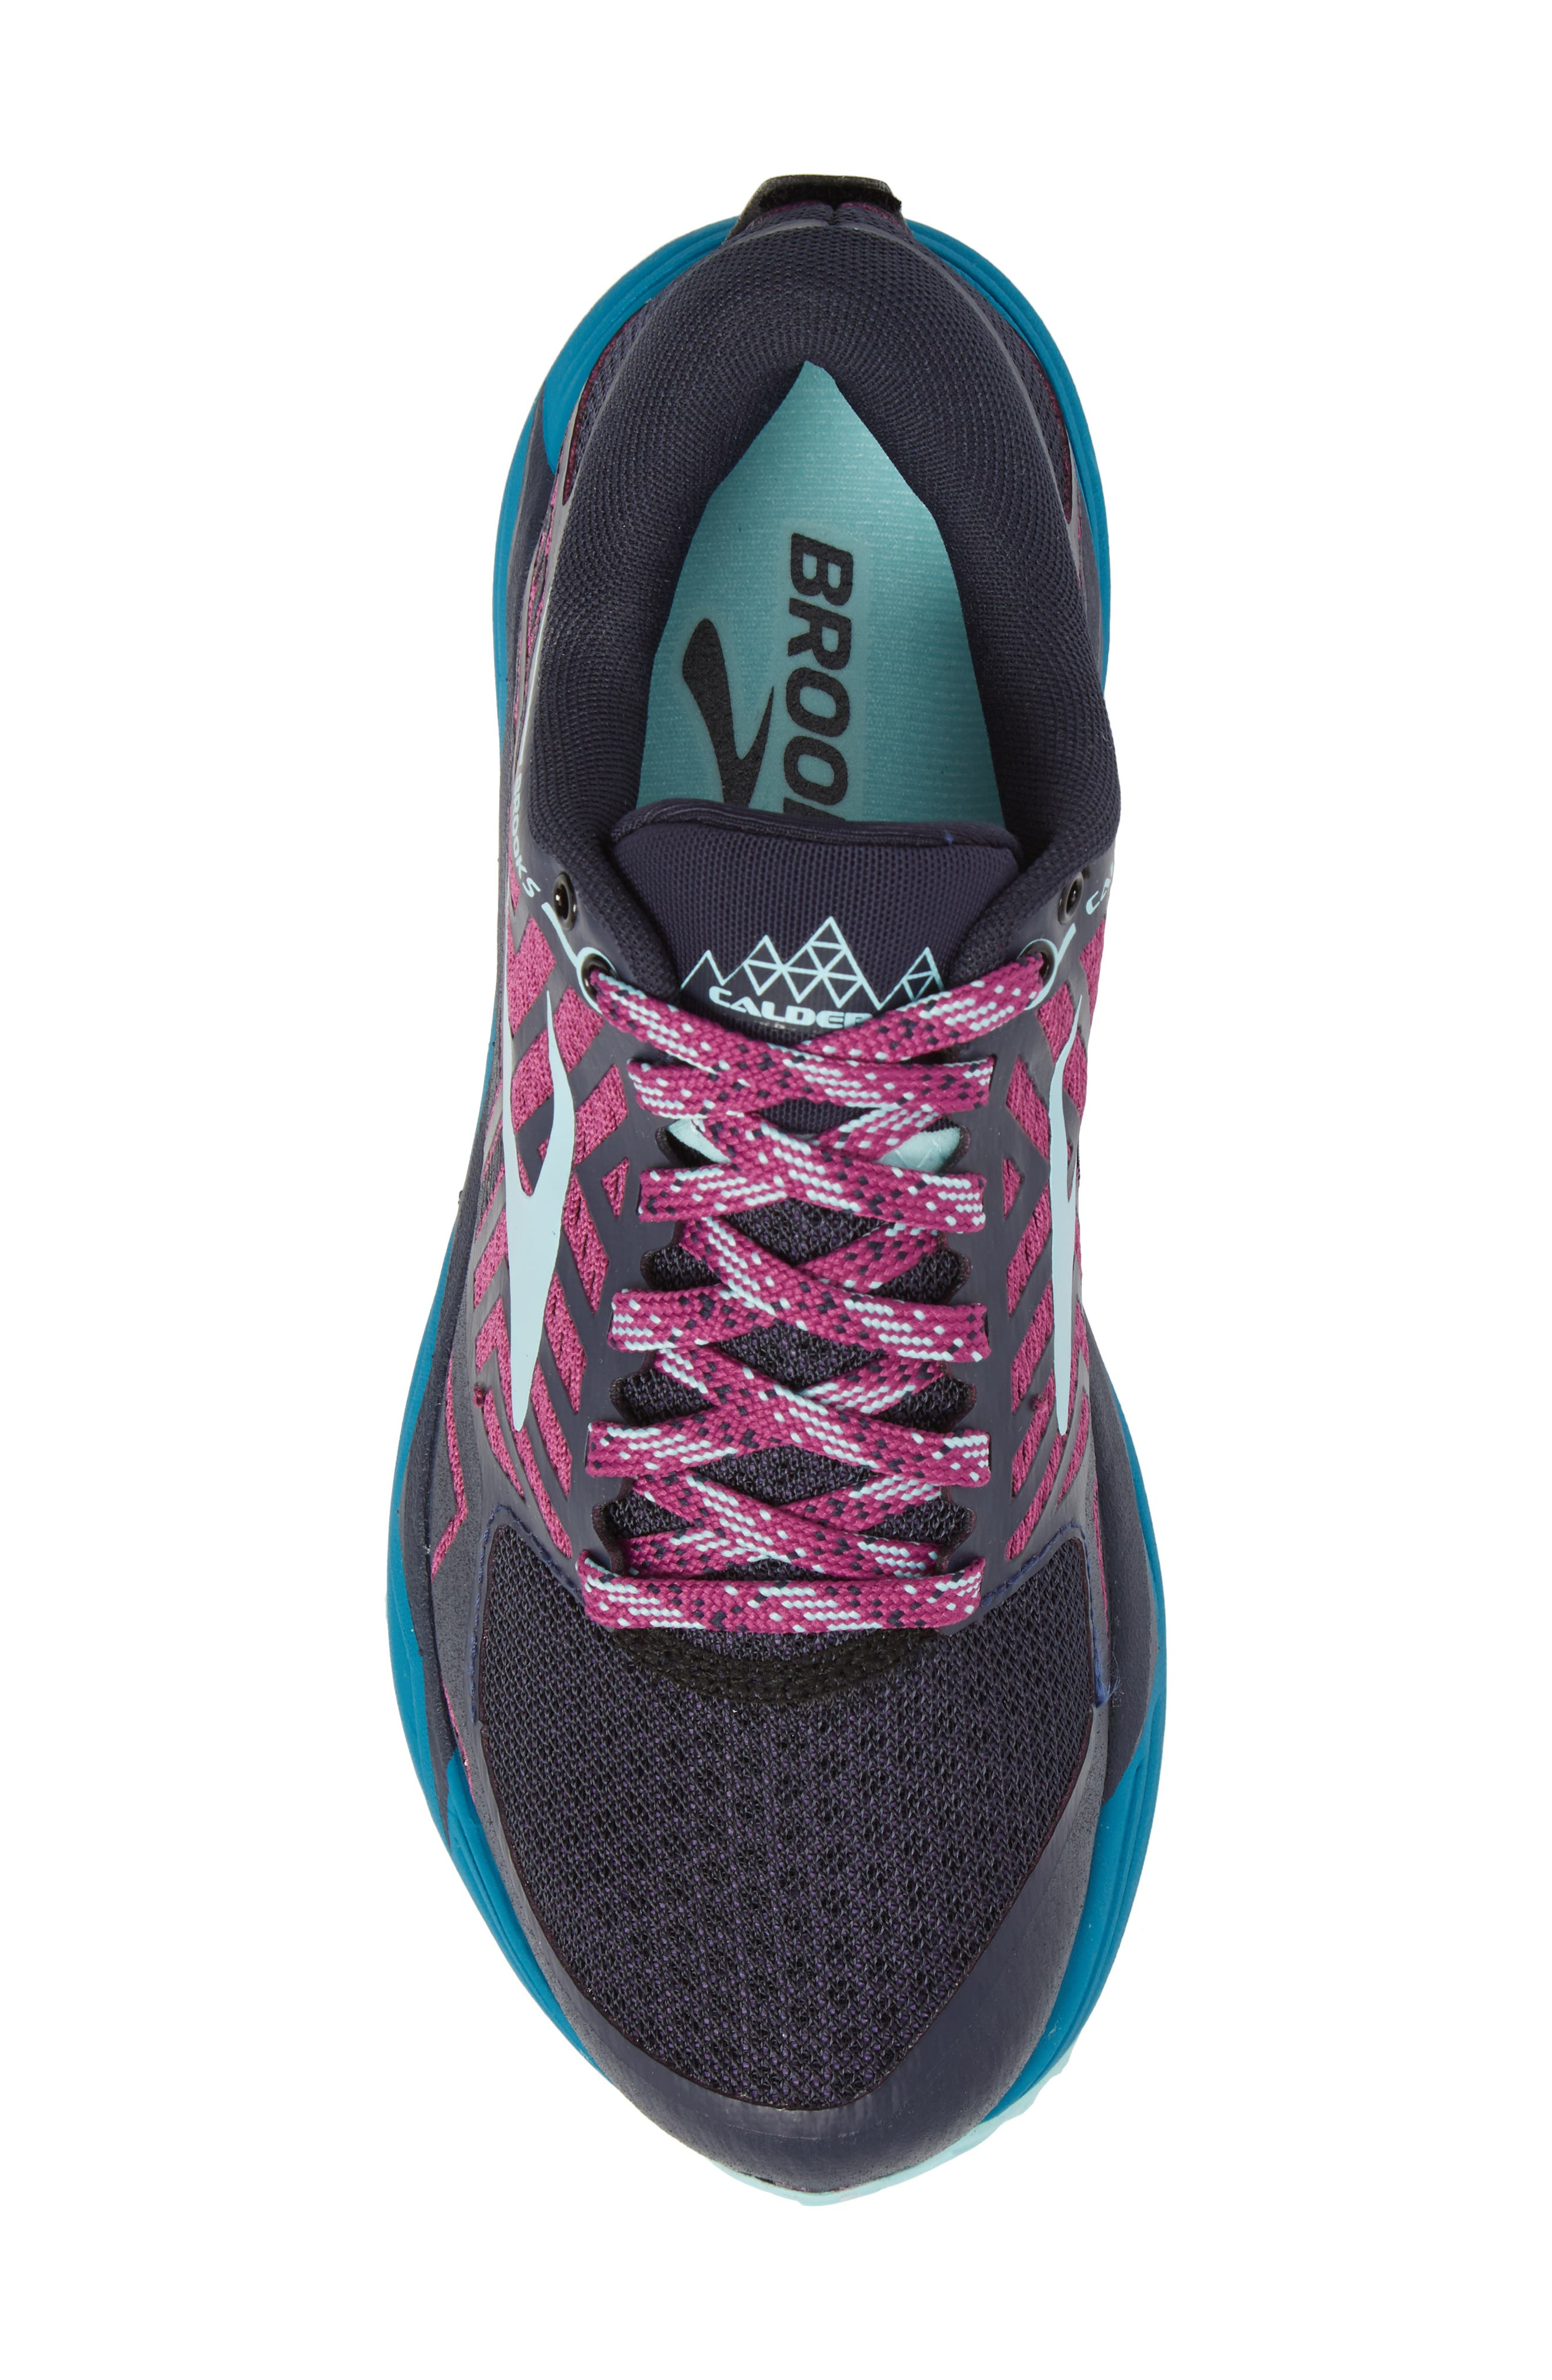 Caldera 2 Trail Running Shoe,                             Alternate thumbnail 5, color,                             NAVY/ PLUM/ ICE BLUE